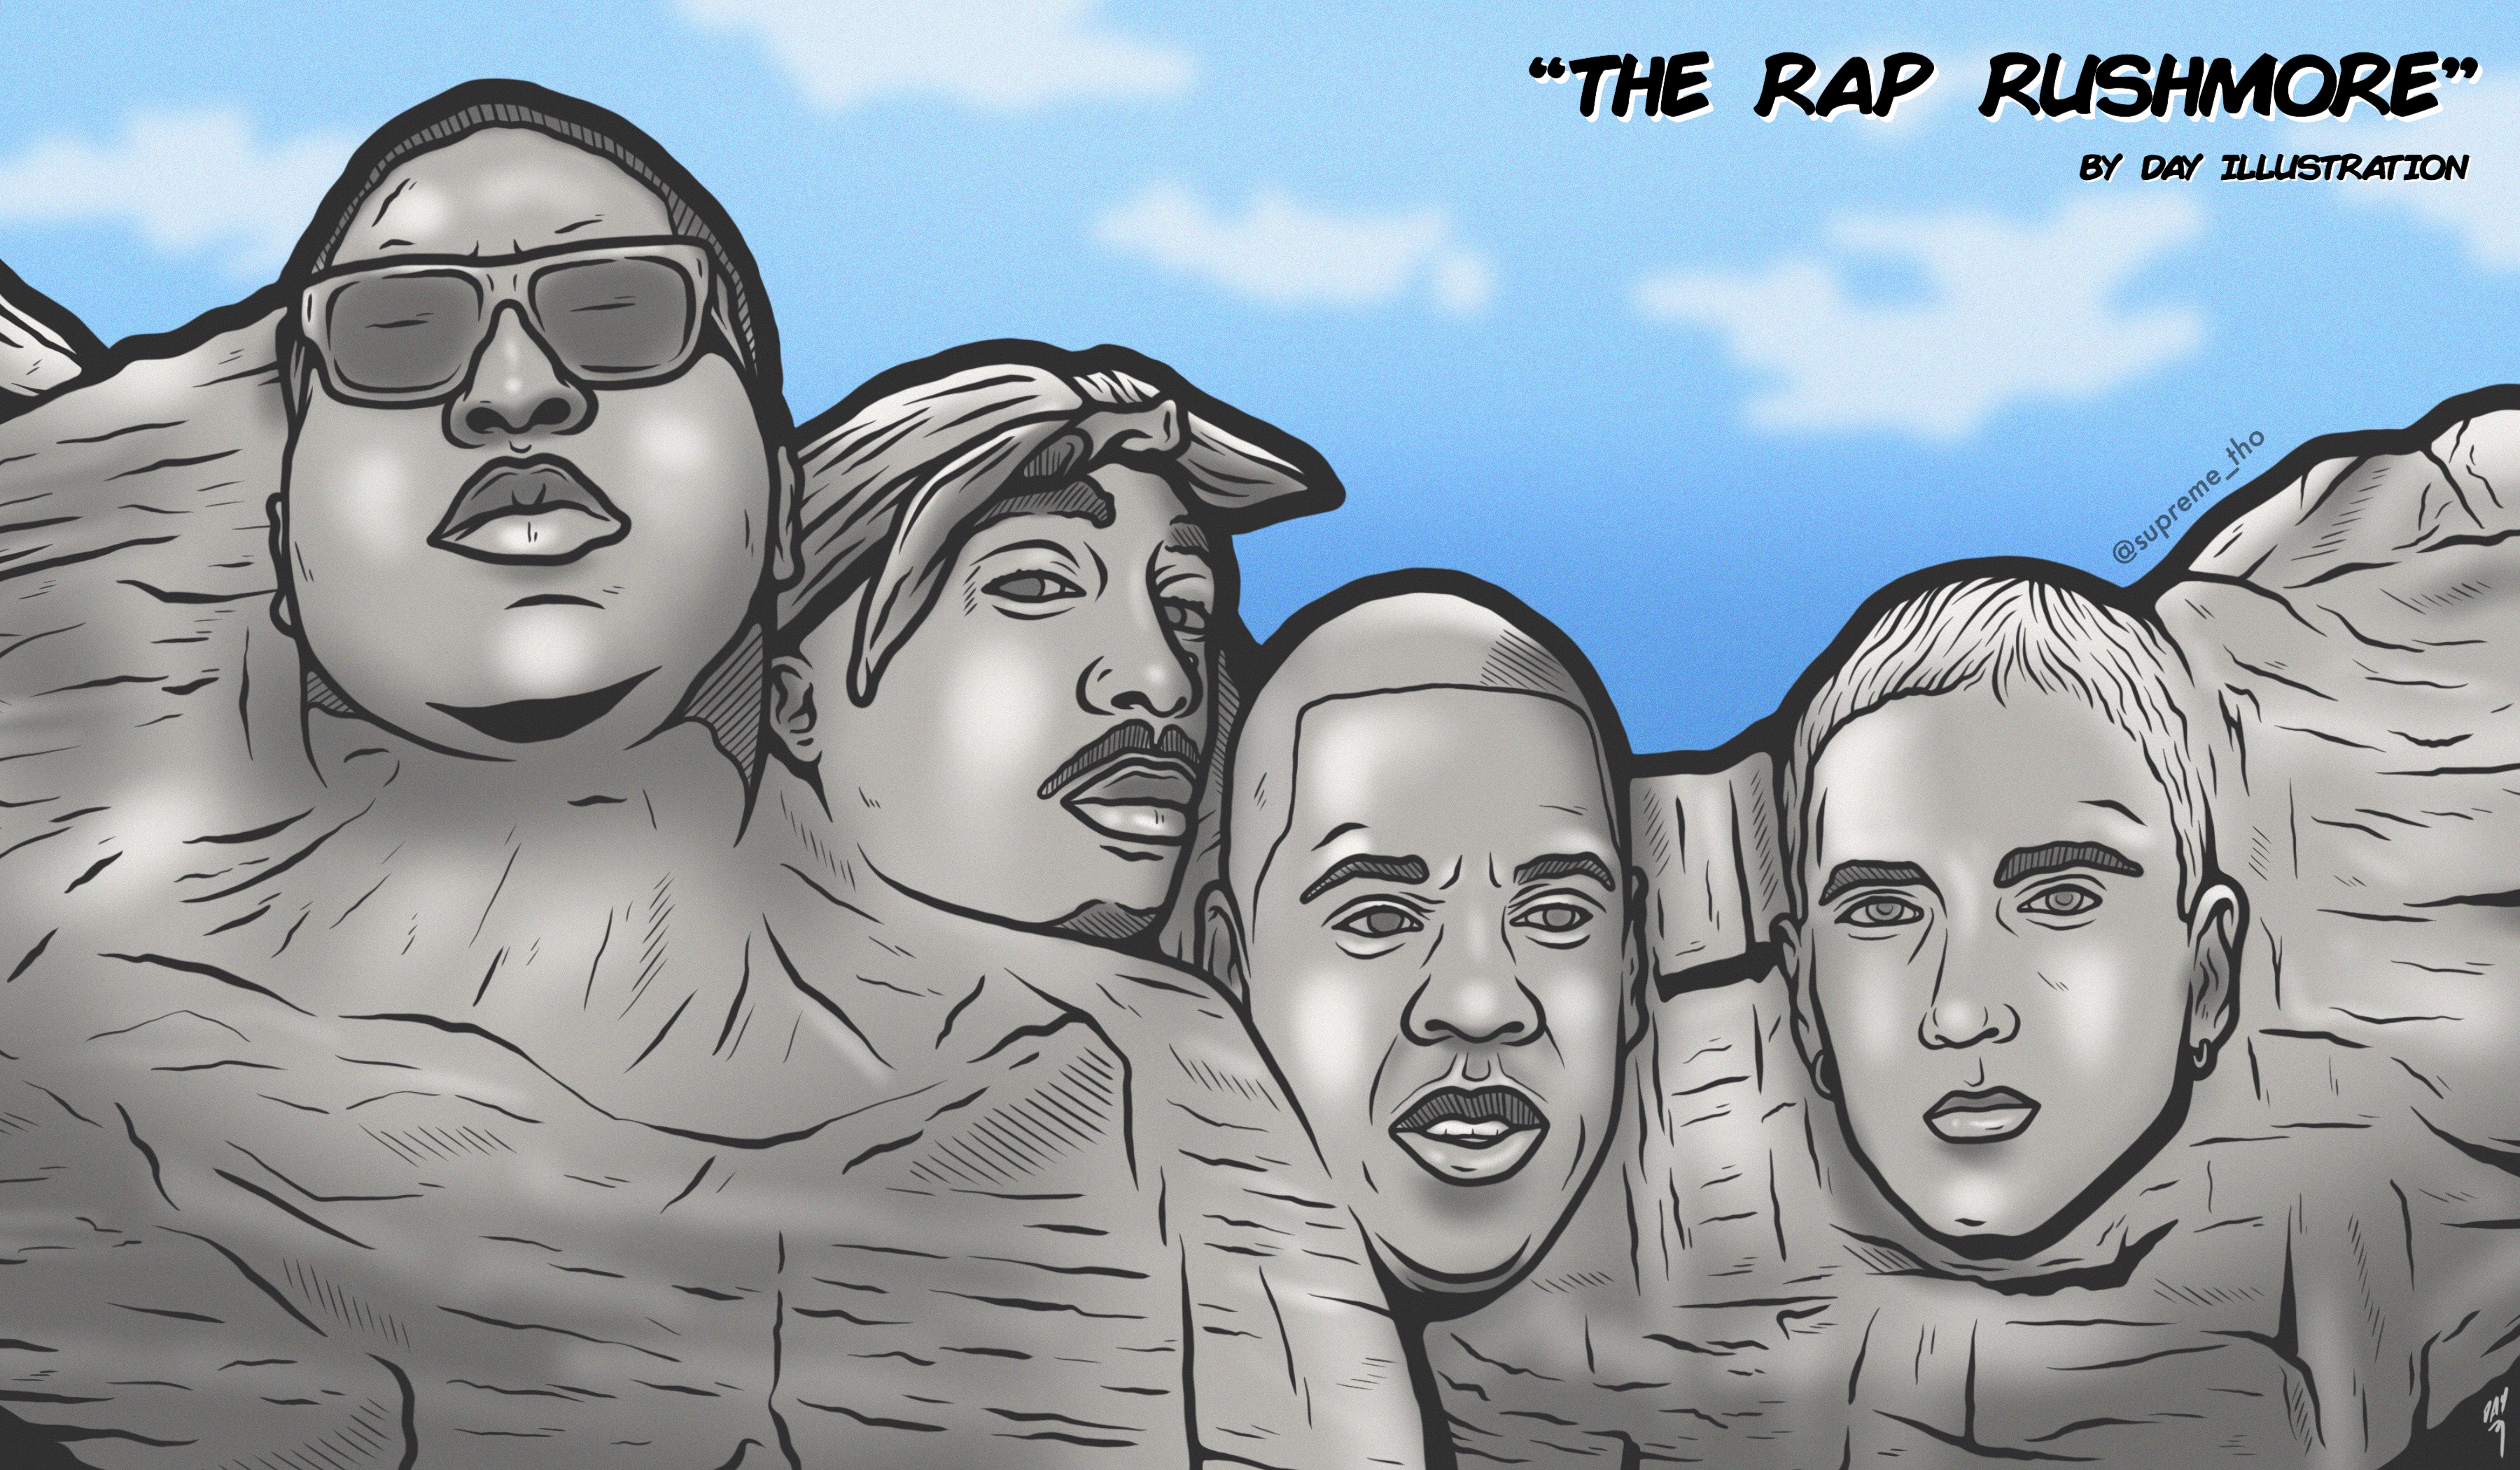 THE RAP RUSHMORE